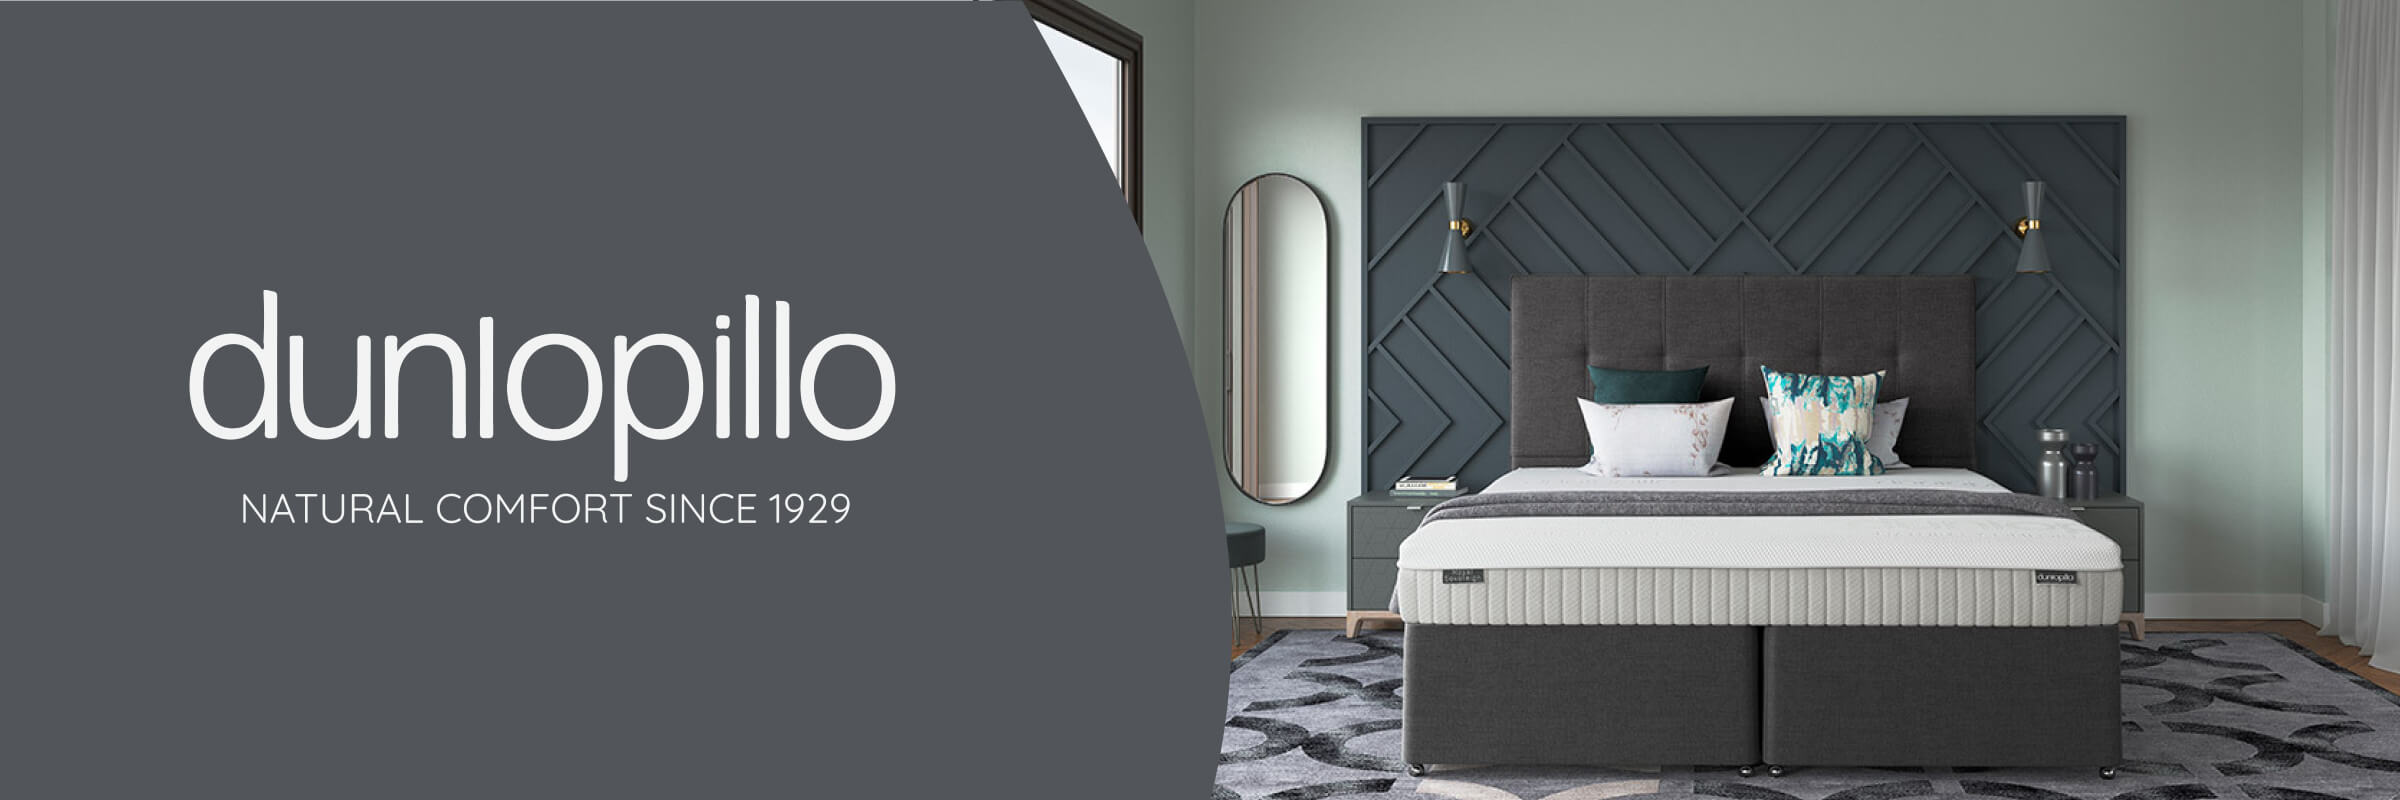 Dunlopillo mattresses and divan beds: natural comfort since 1929